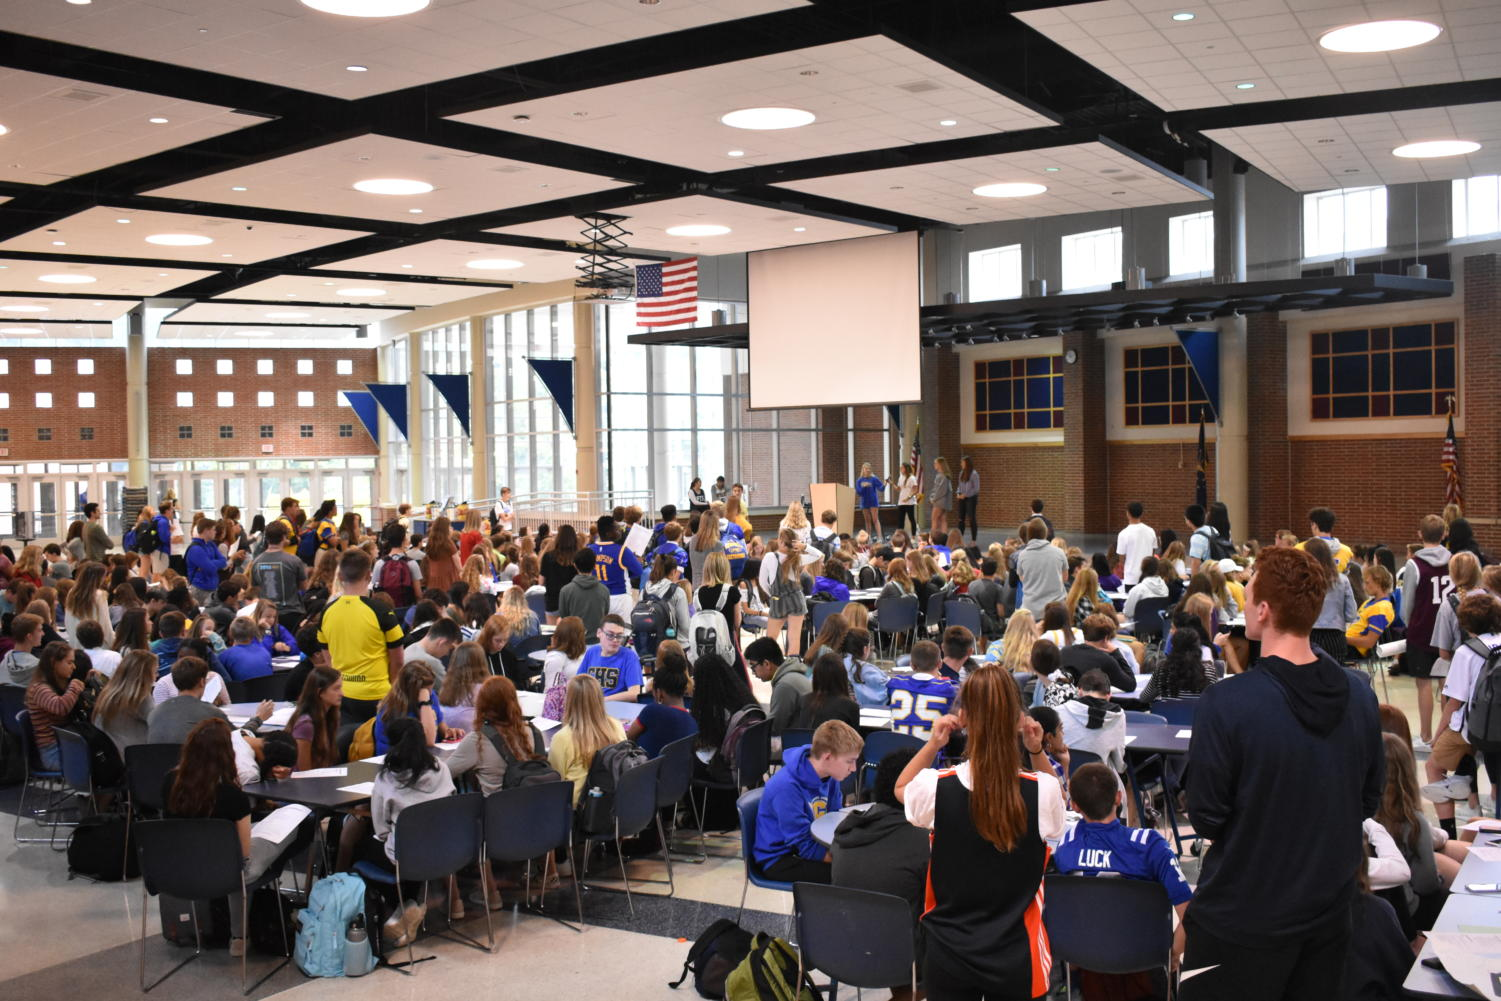 House members meet in the freshmen cafeteria during SRT. The last House meeting was on May 3.